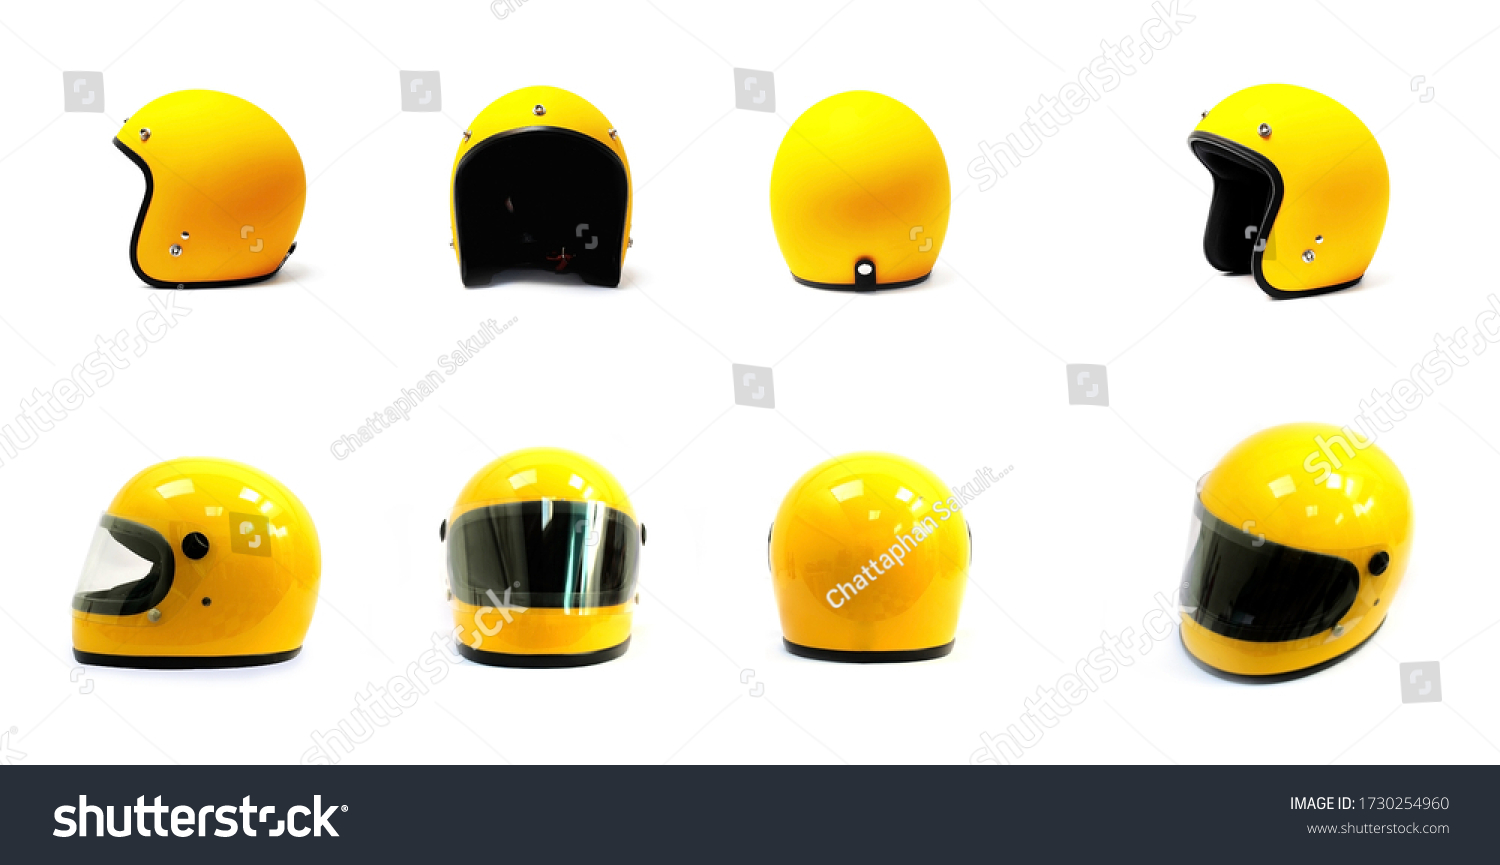 Yellow motorcycle Full helmet and Open face helmet on a white background, side back front #1730254960